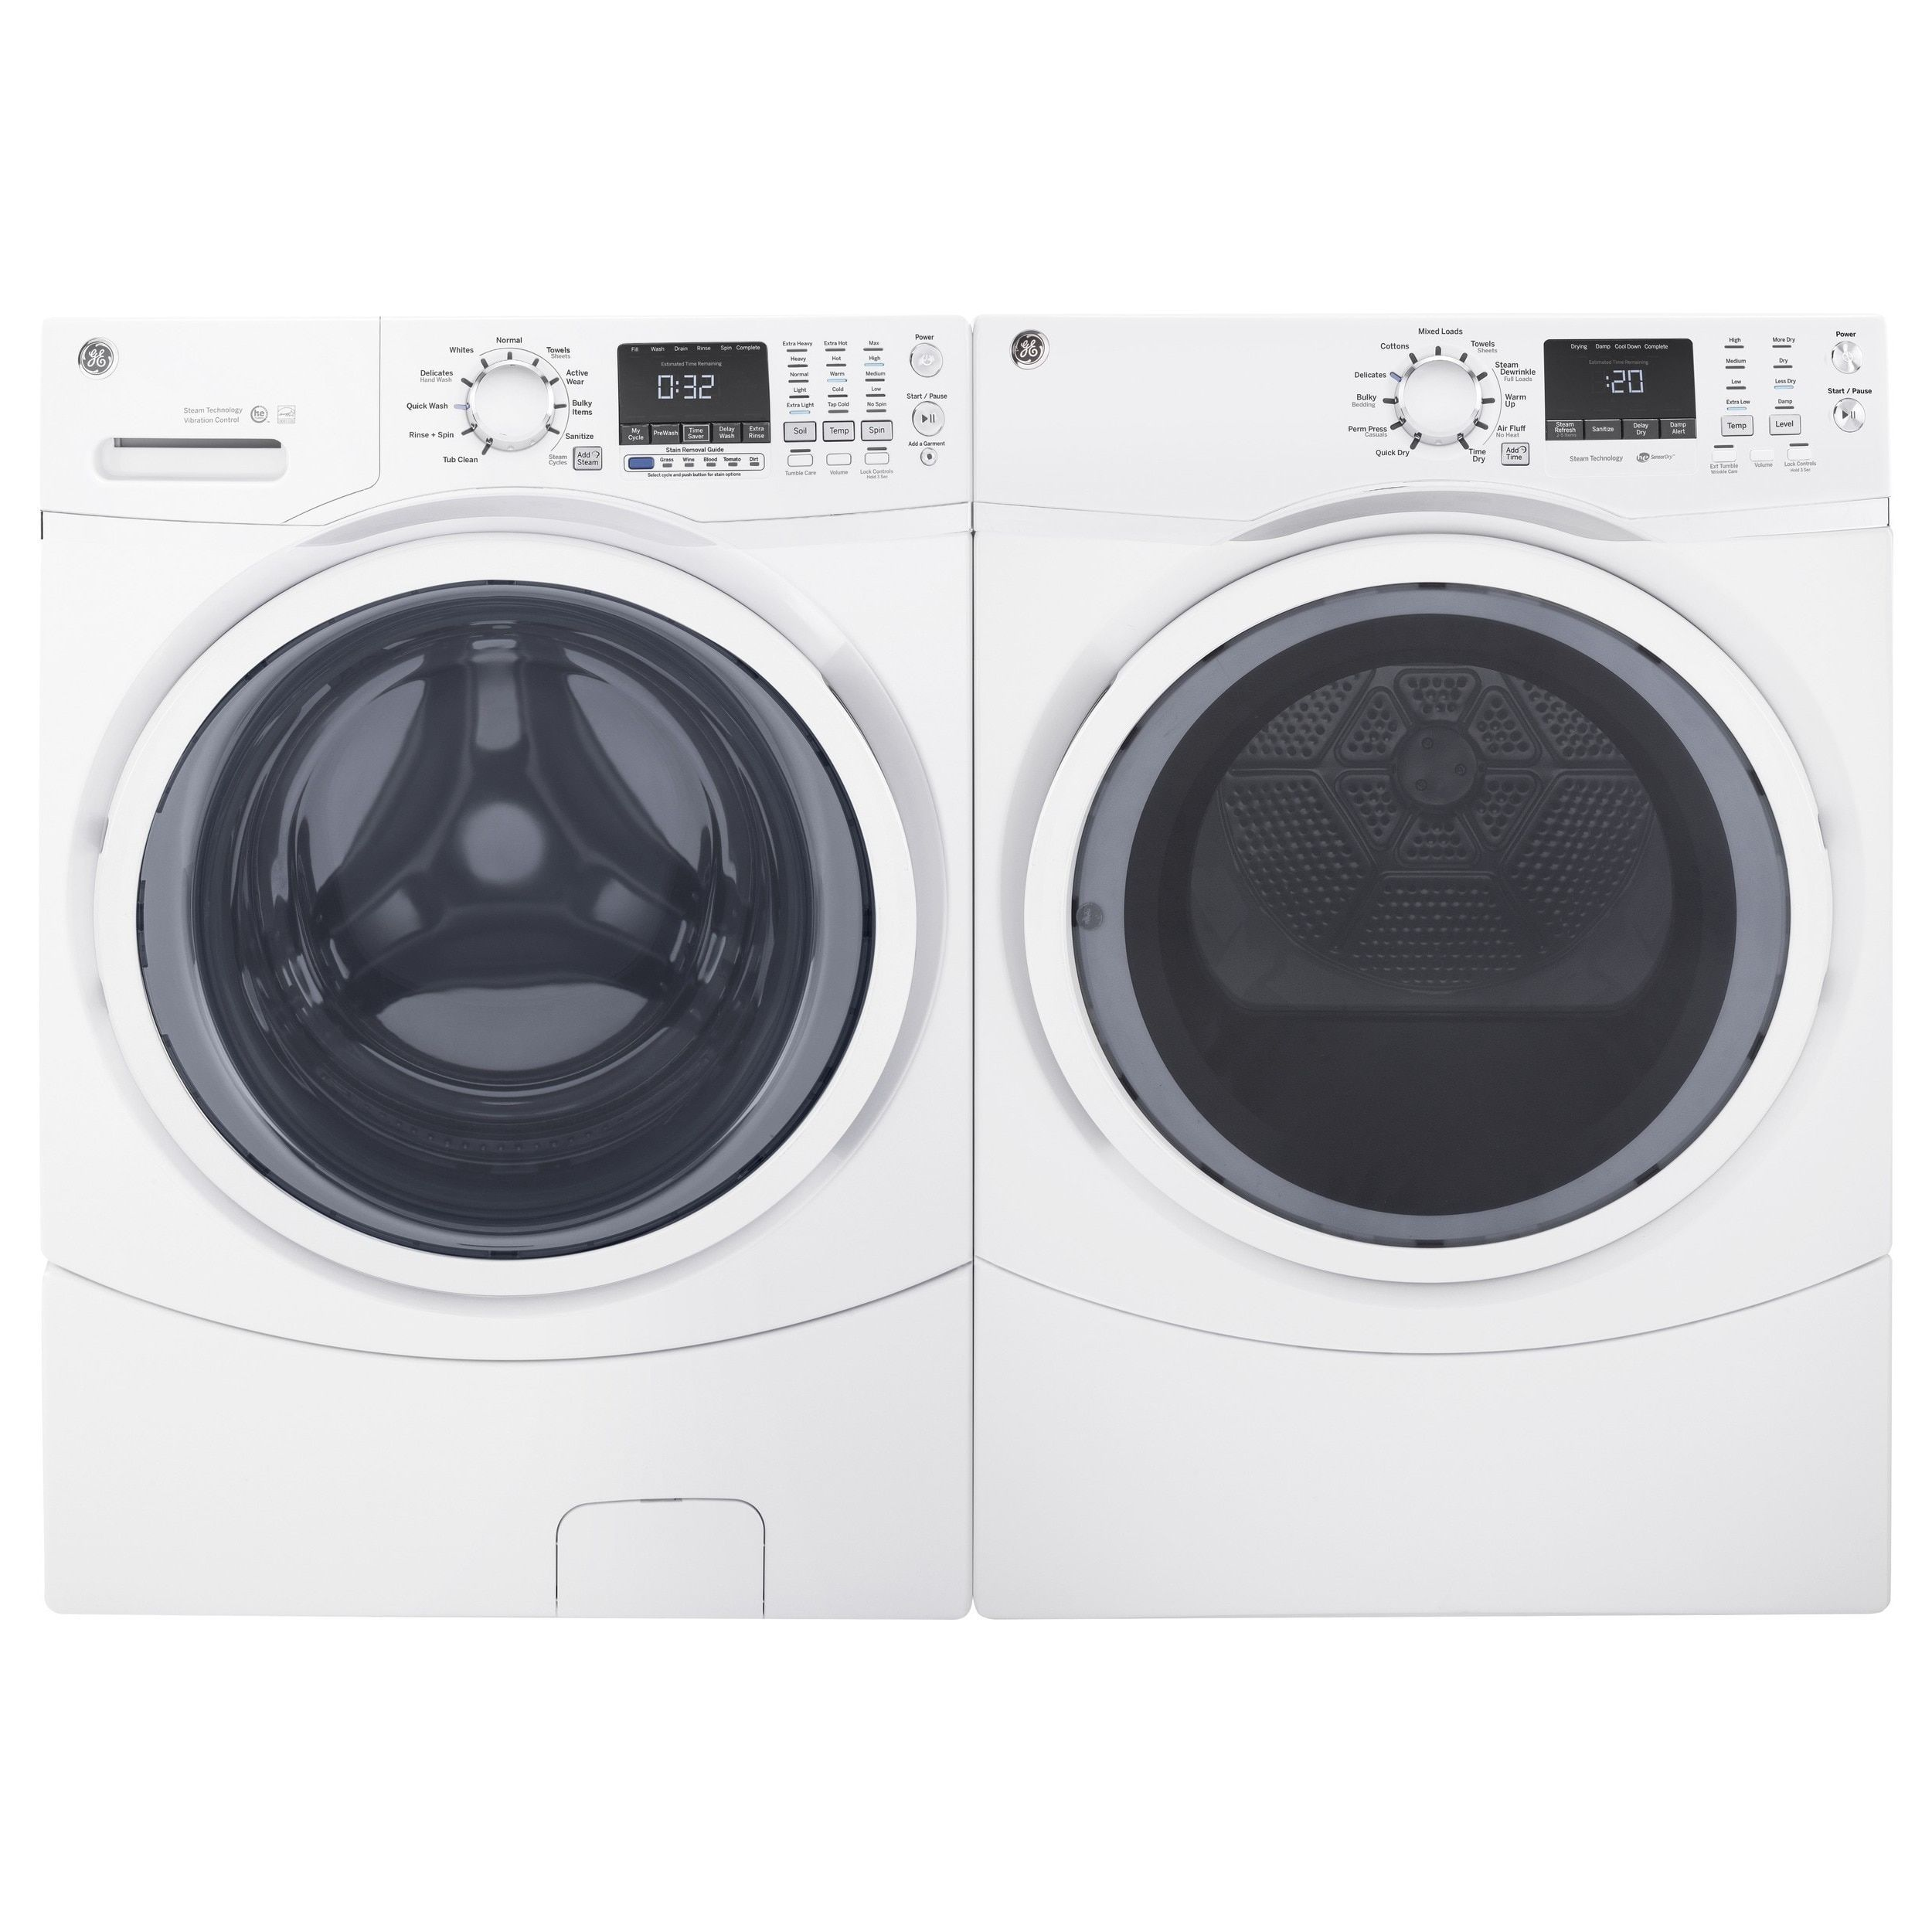 Pin On Washer Dryer Combos